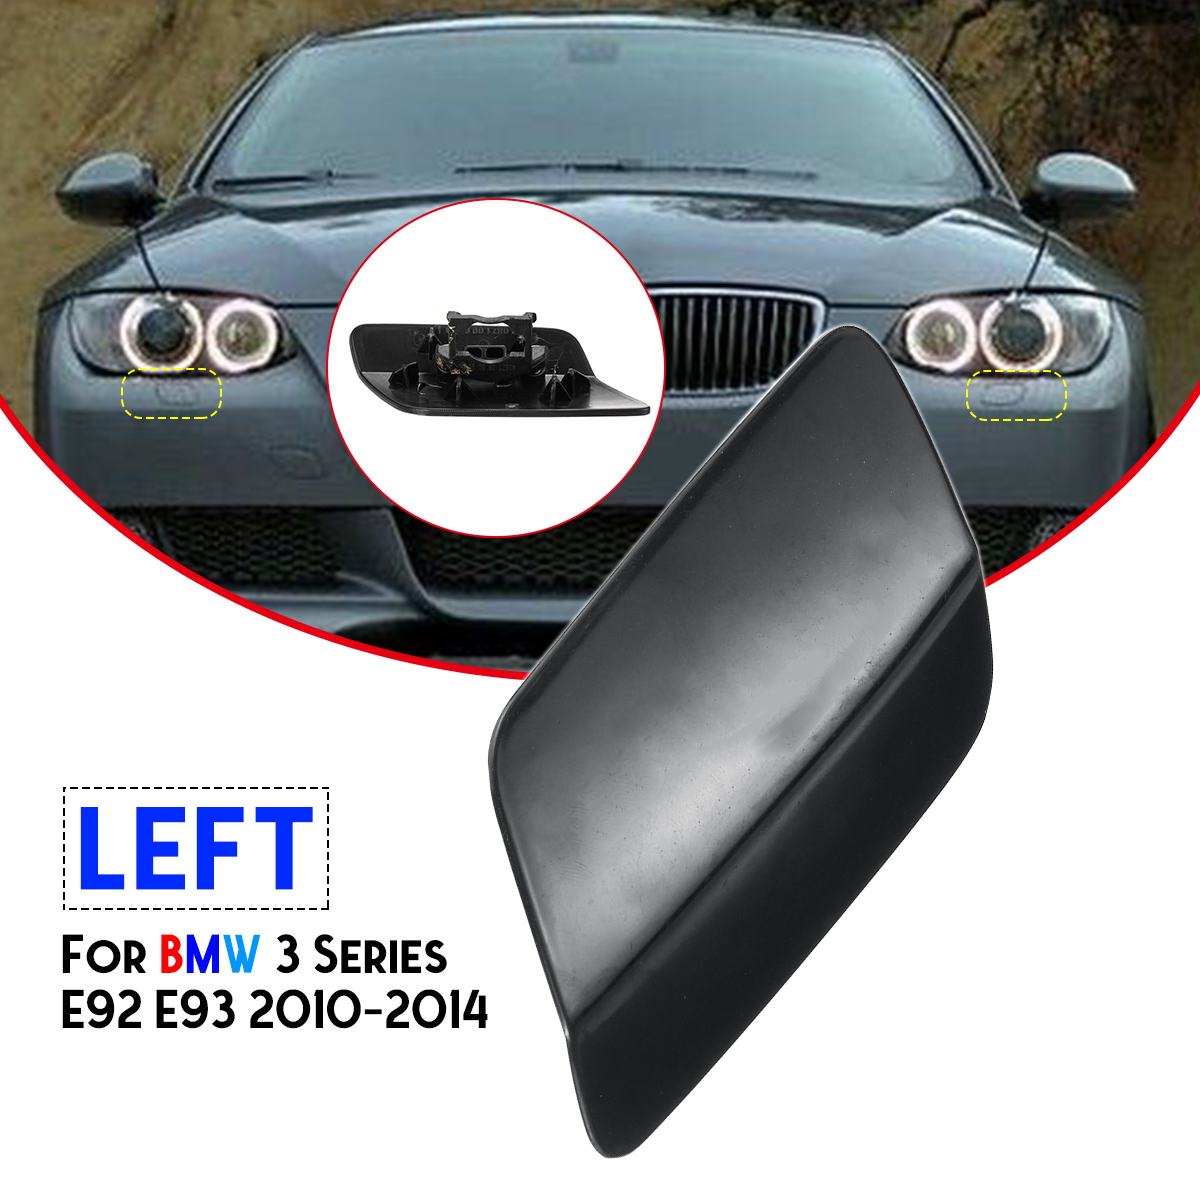 For BMW E92 E93 LCI 10-13 Front Head Light Washer Jet Nozzle Cover Cap Right !